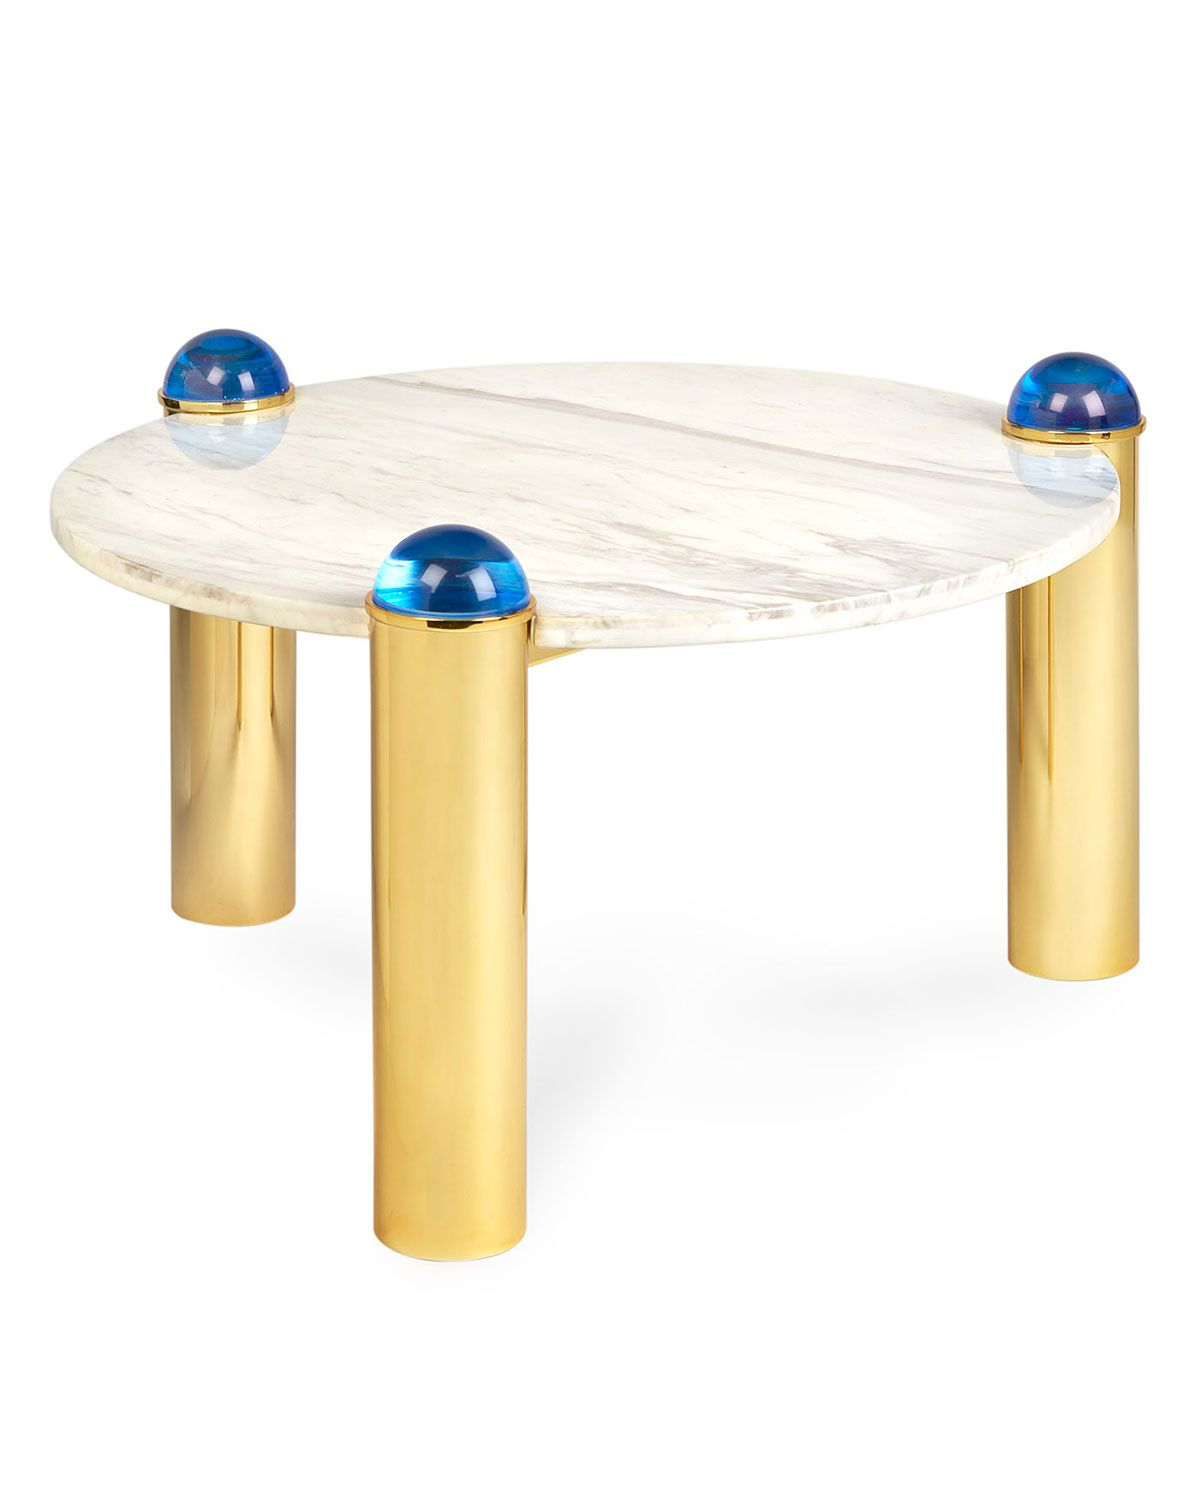 Globo coffee table home objects decorative useful colorful furniture jonathan adler cocktail tables accent tables cat cat home furniture neiman marcus home decor round coffee tables geotapseo Choice Image